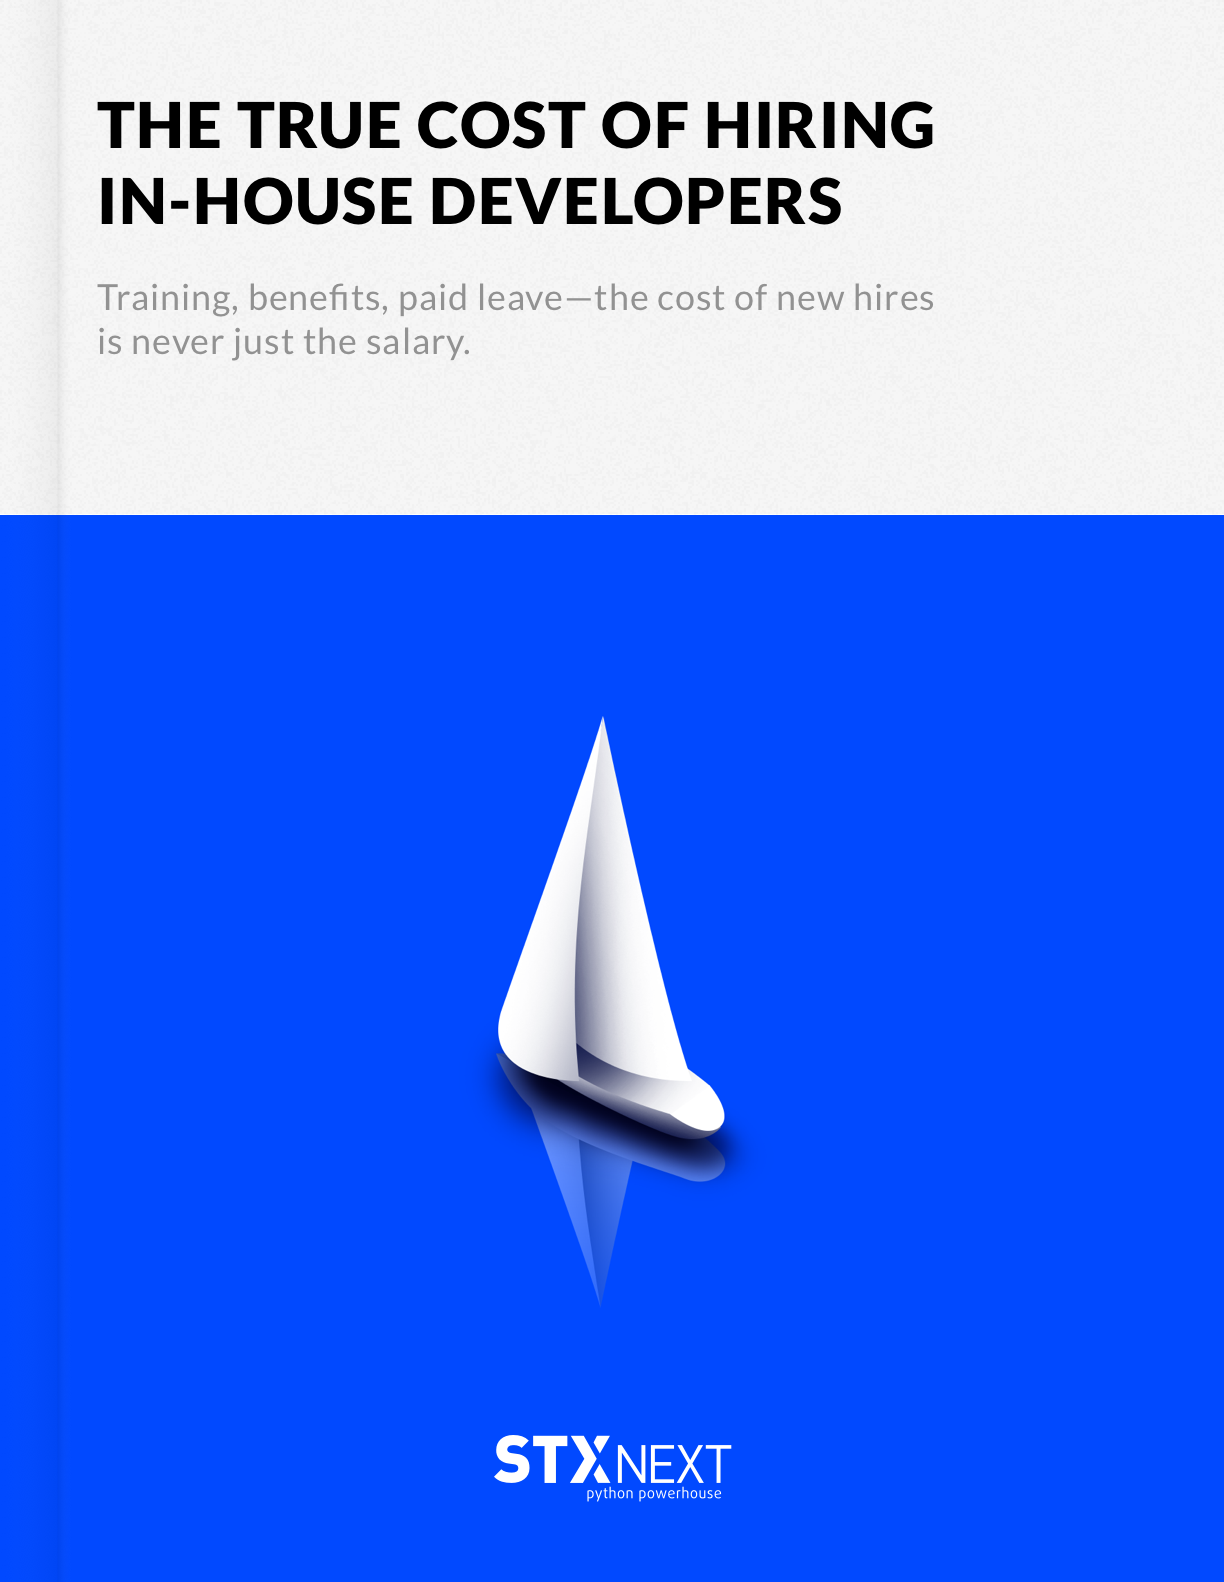 The True Cost of Hiring In-House Developers (1)